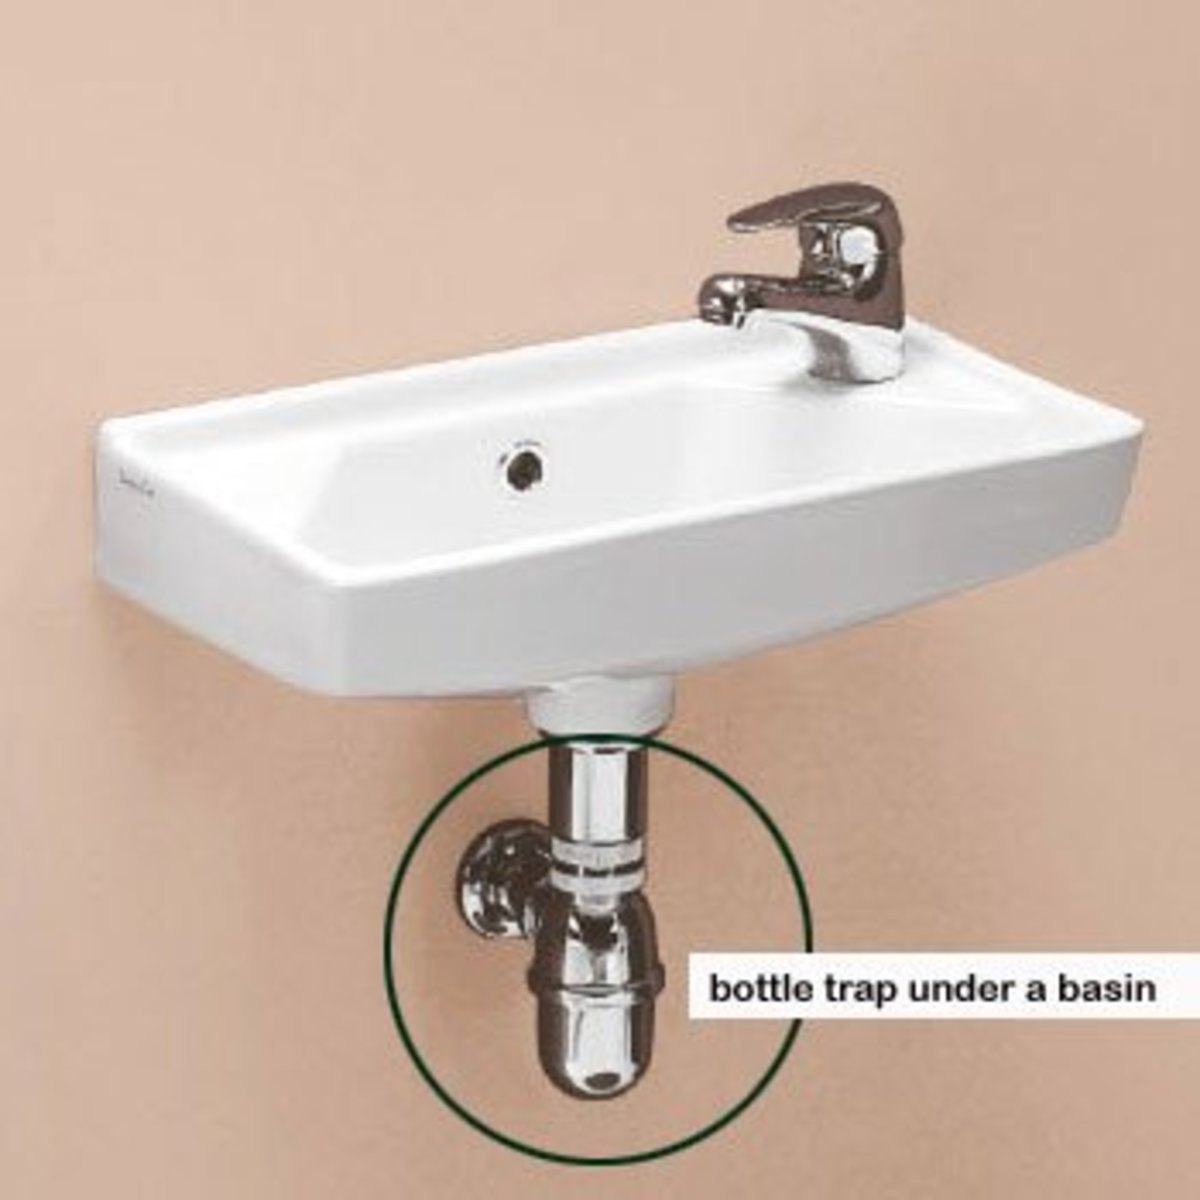 bottle trap fitted under a wall hung basin